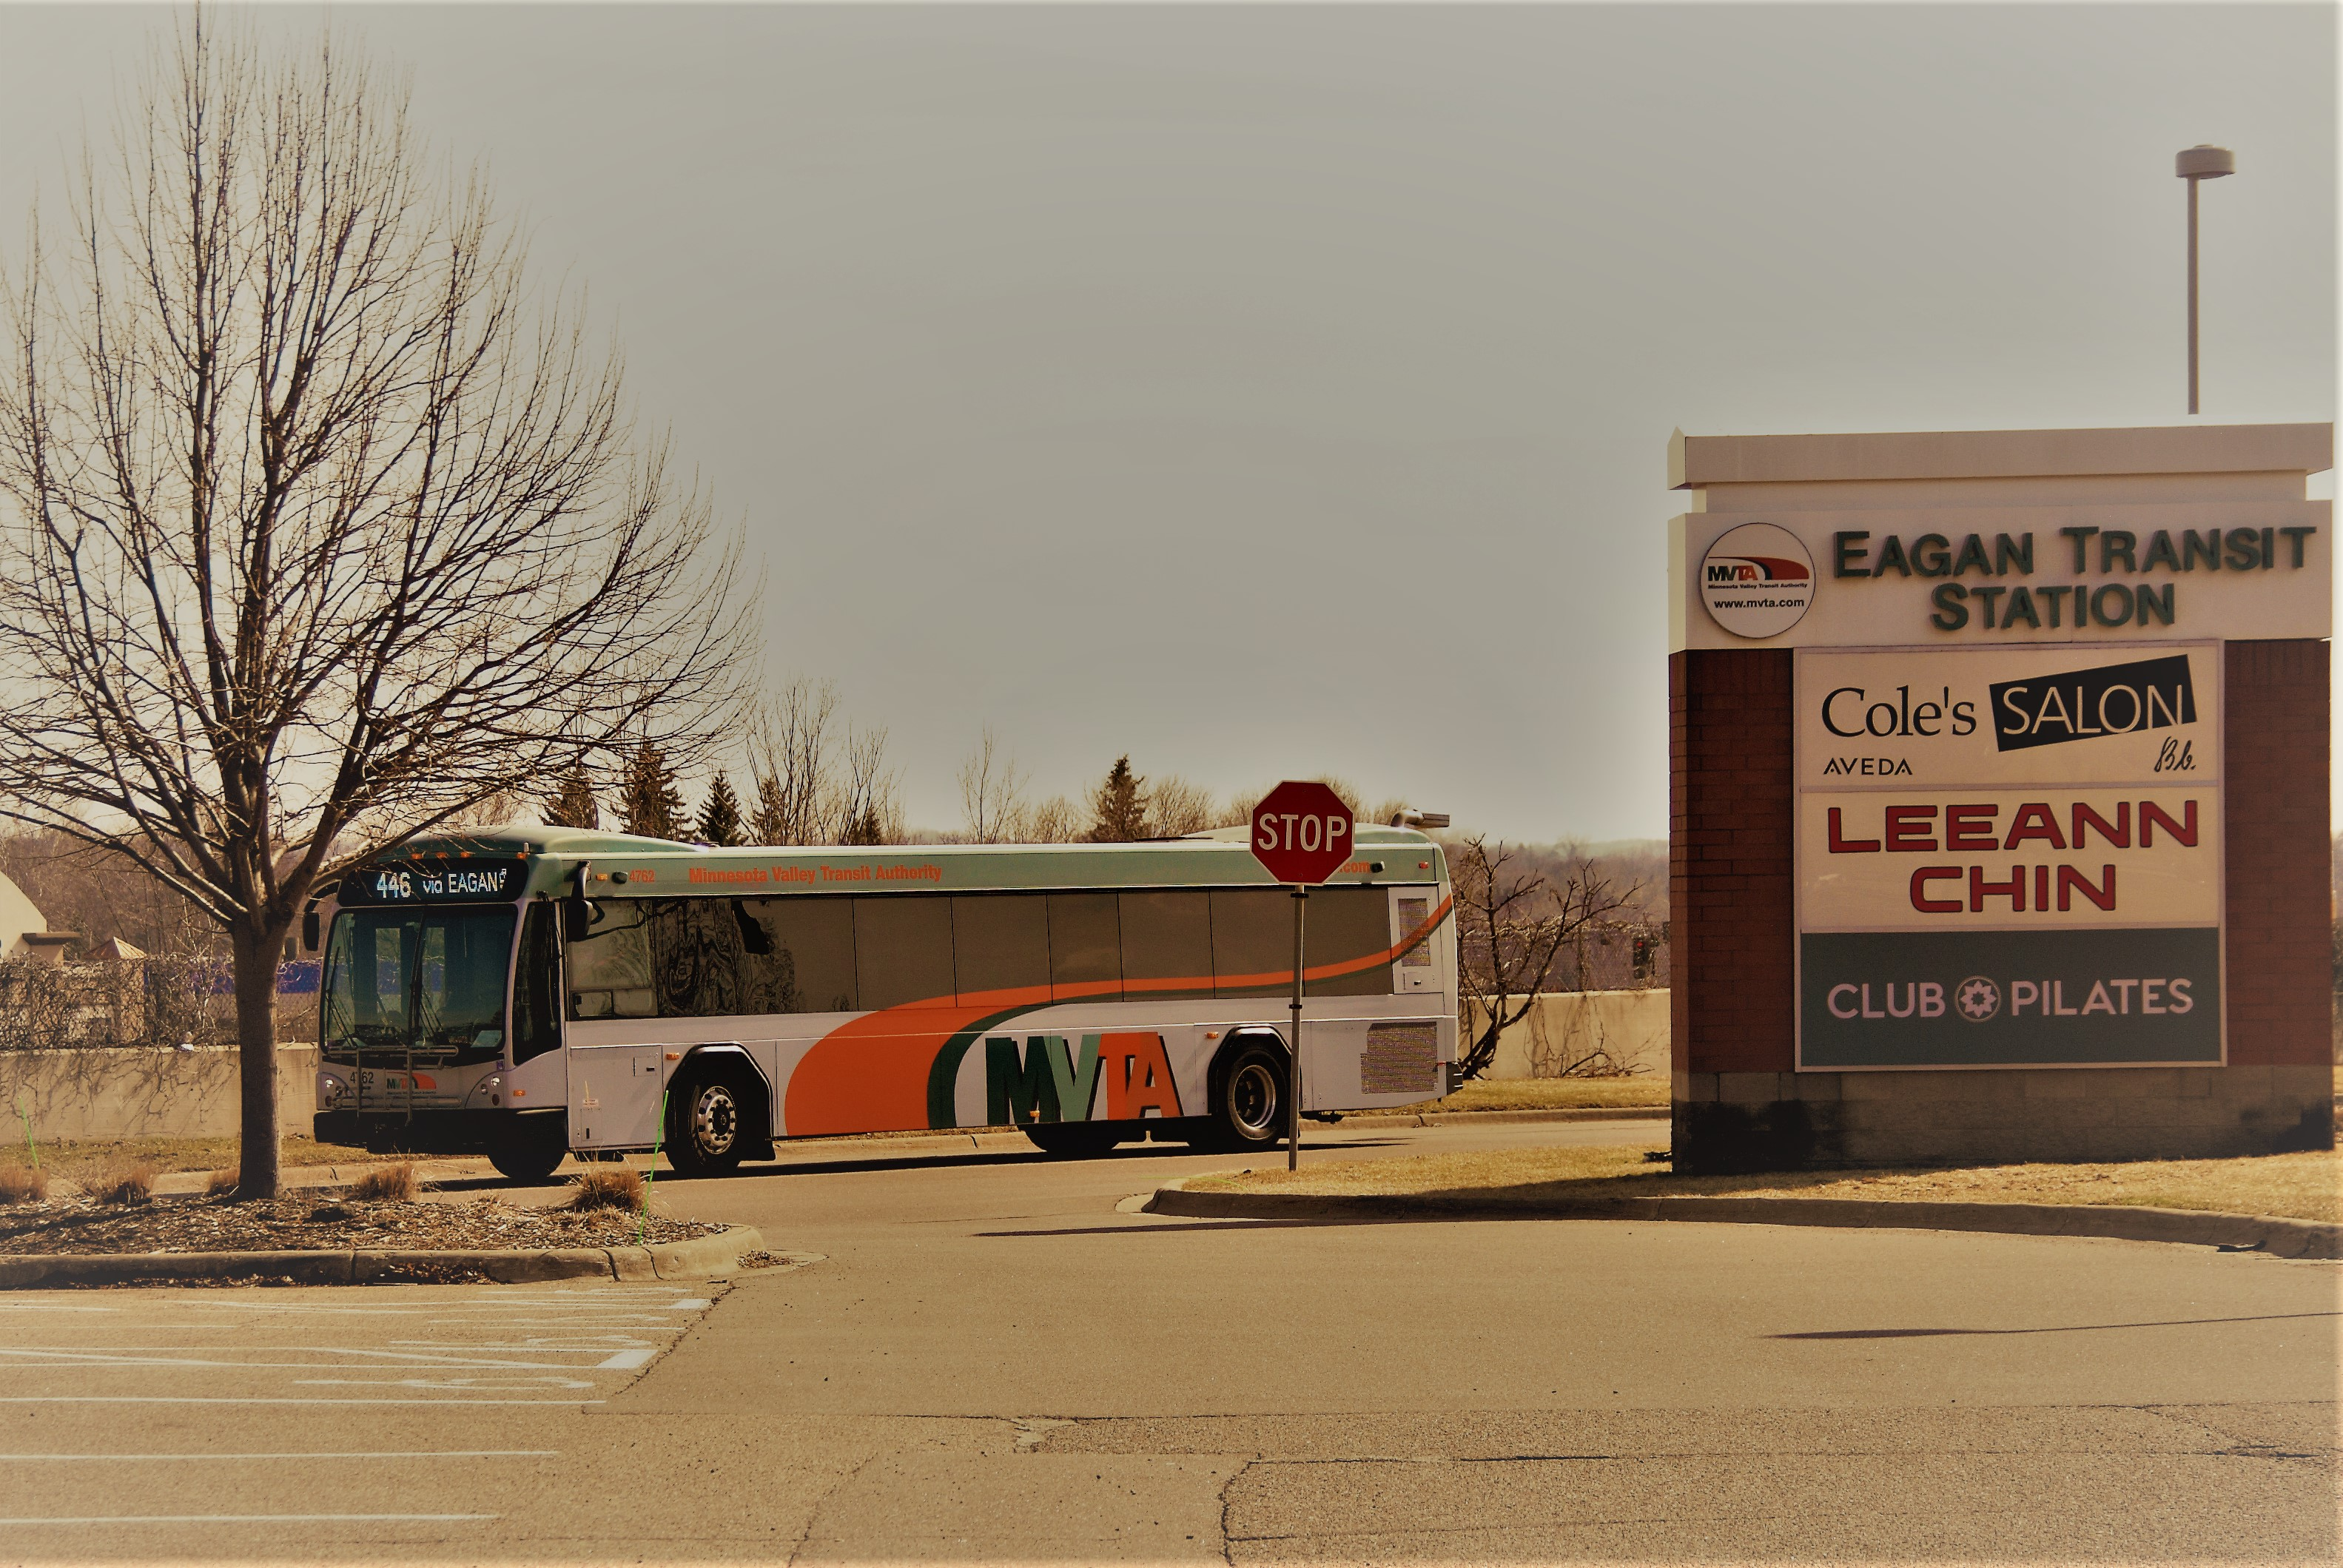 Eagan Transit Station is located at 35E/Pilot Knob/Yankee Doodle